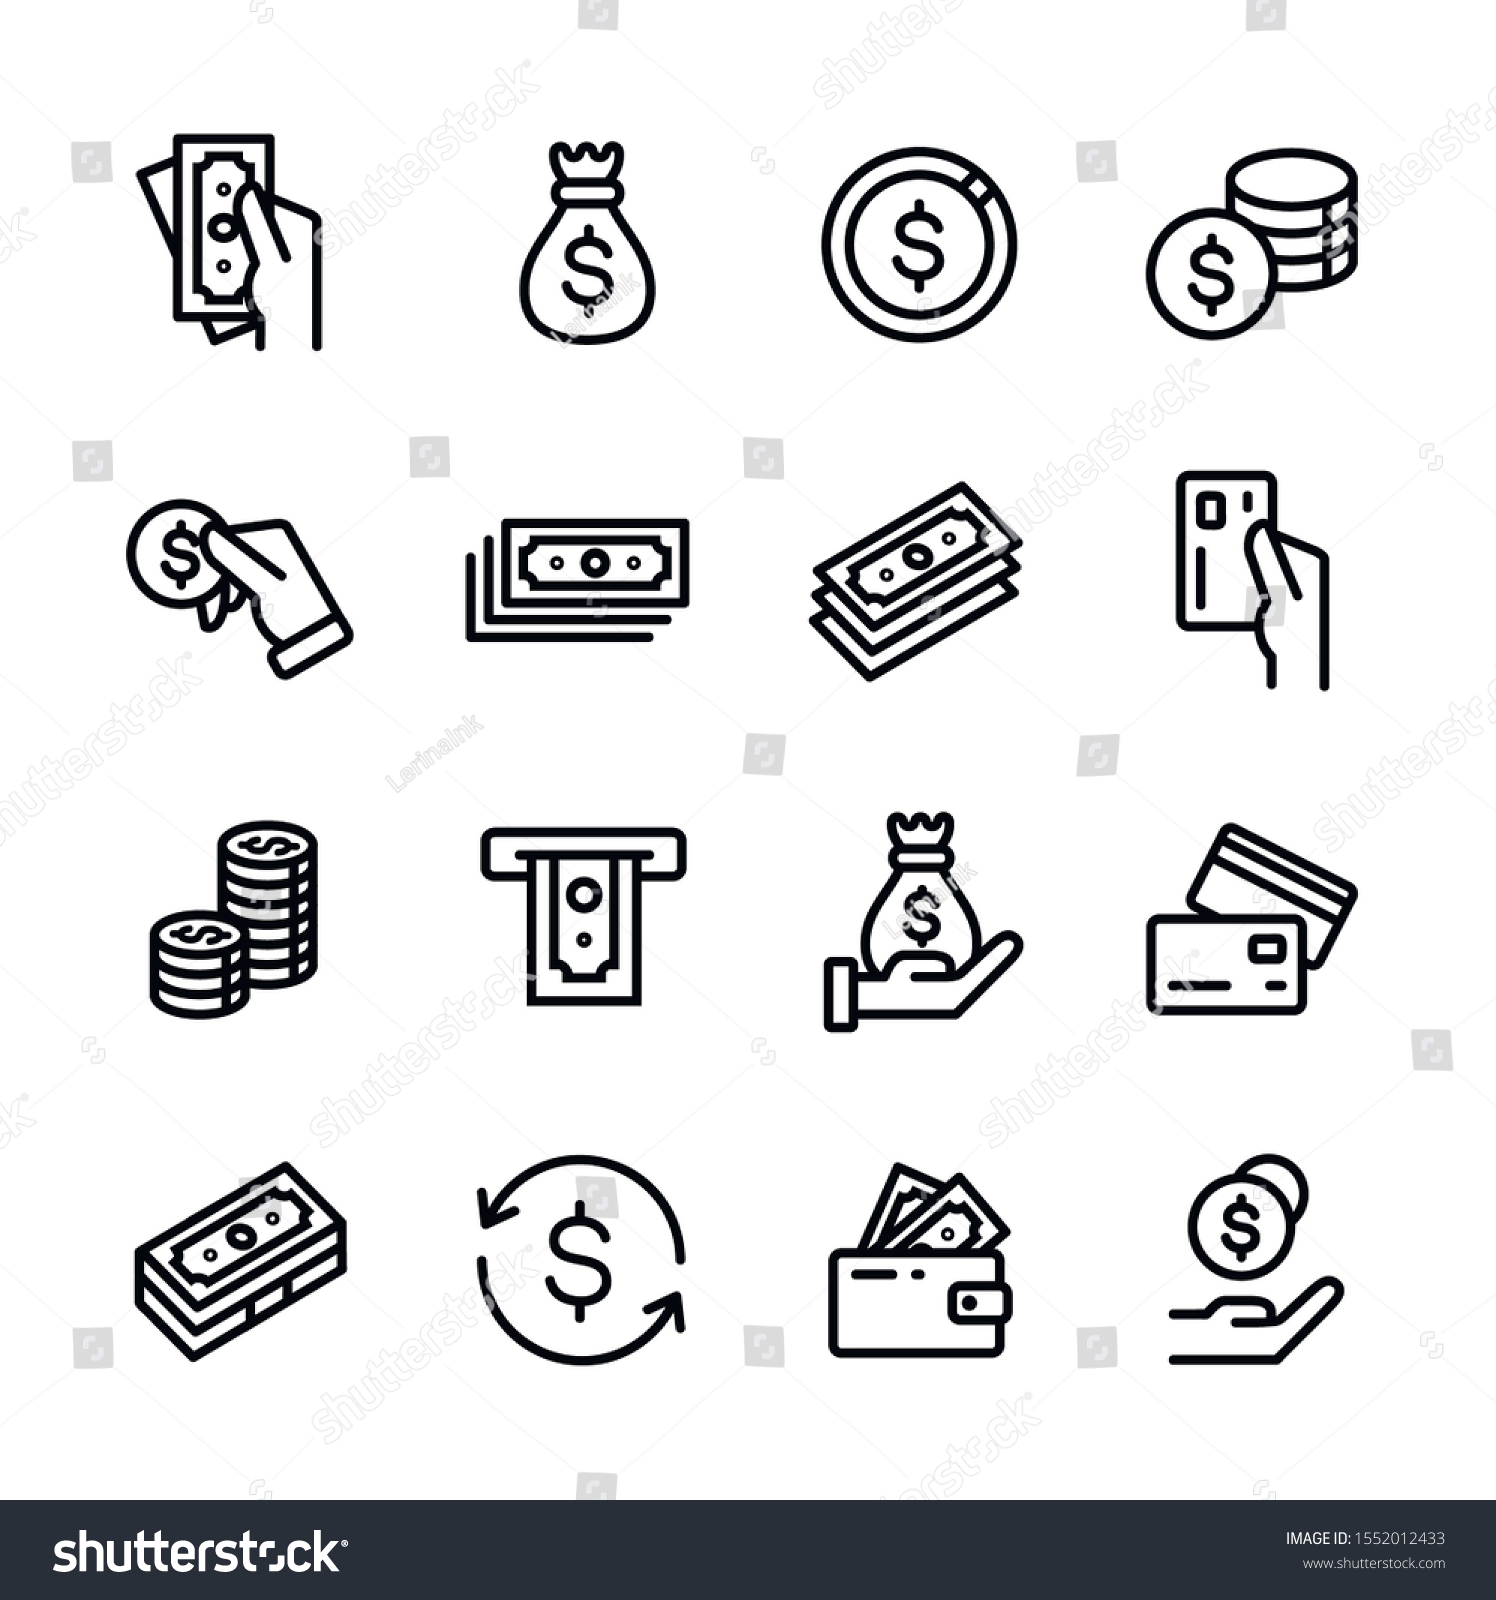 Money, finance, banking outline icons collection. Money line icons set vector illustration. Money bag, coins, credit card, wallet and more